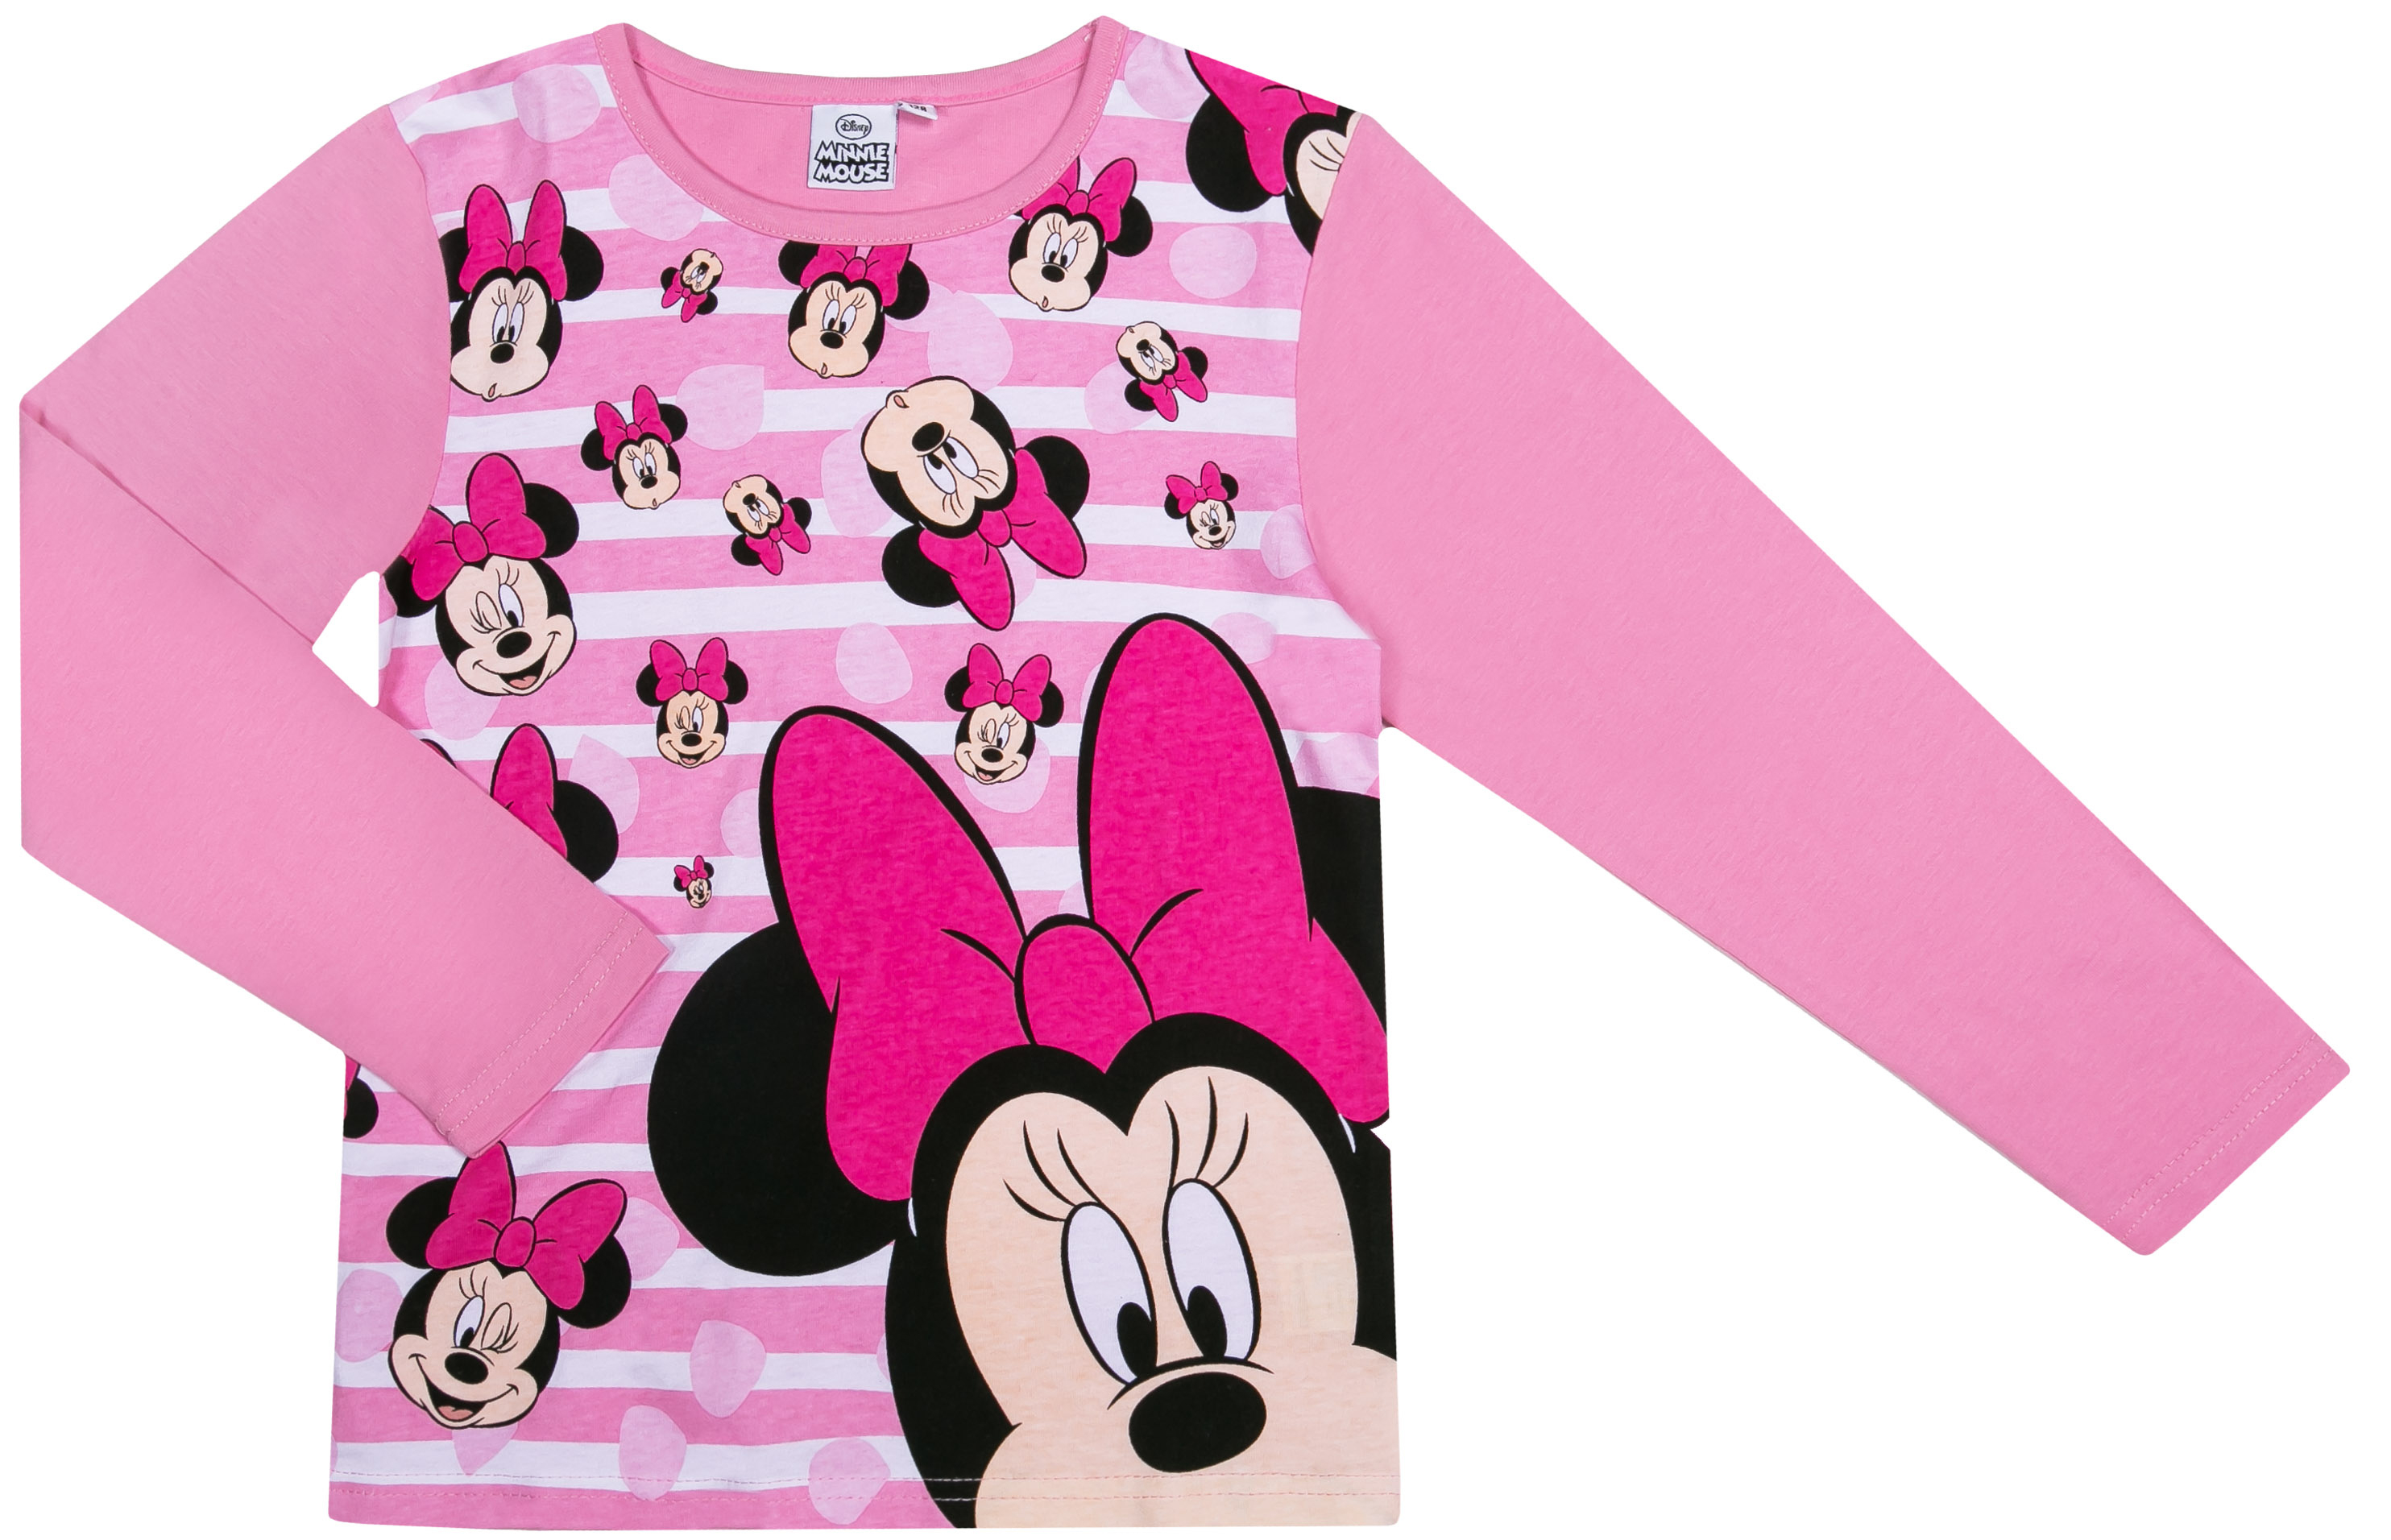 Пижамы Disney minnie Пижама для девочки Minnie Mouse, розовая simba стиральная машина minnie mouse